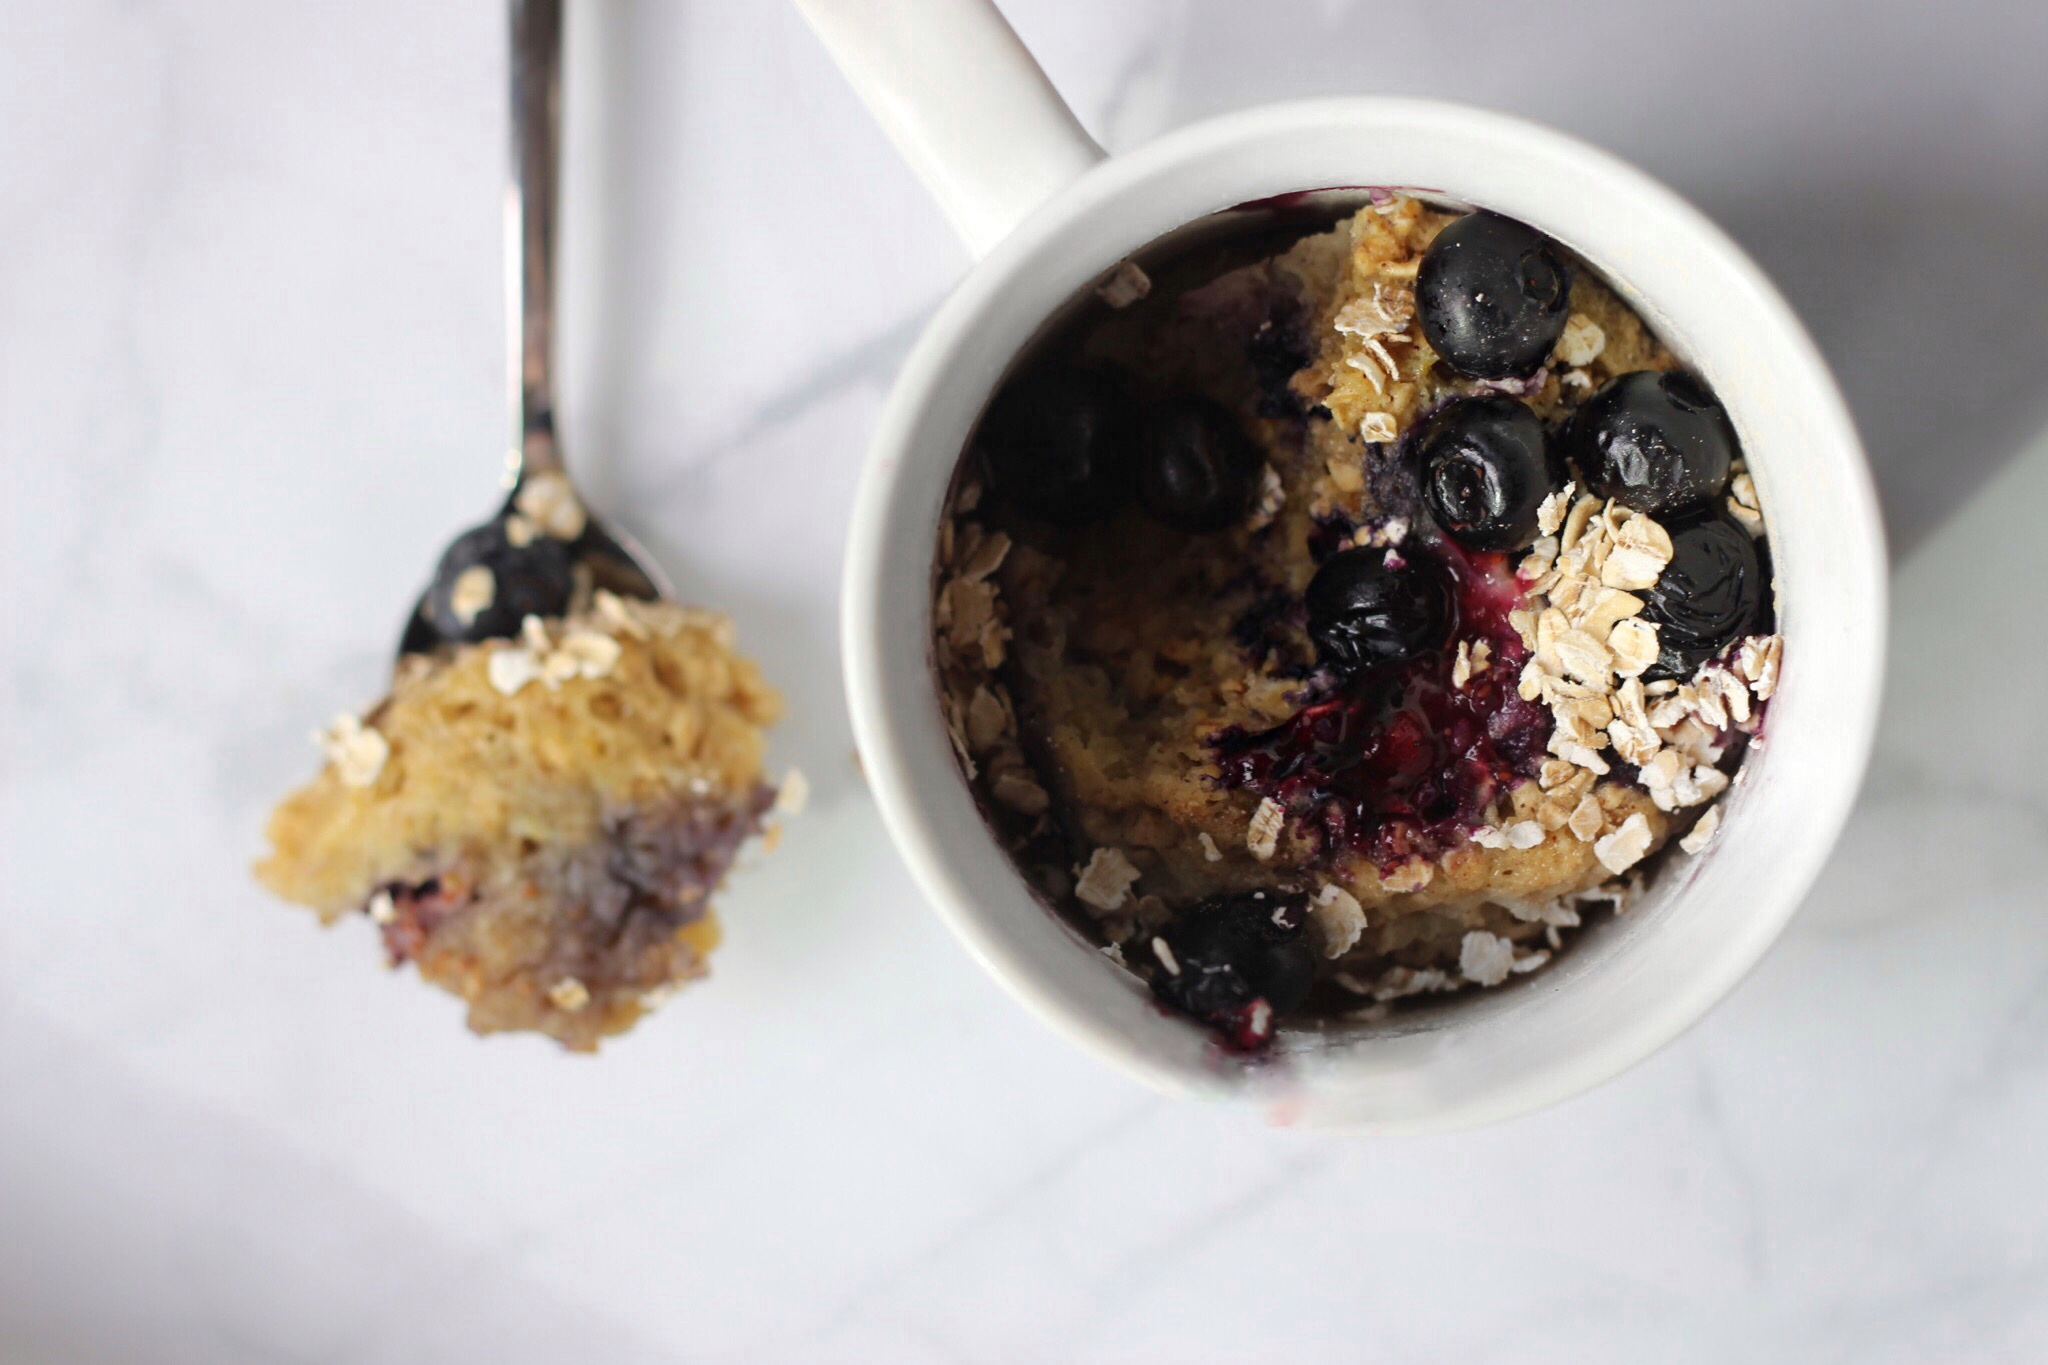 5-minute-healthy-clean-blueberry-muffin.jpg